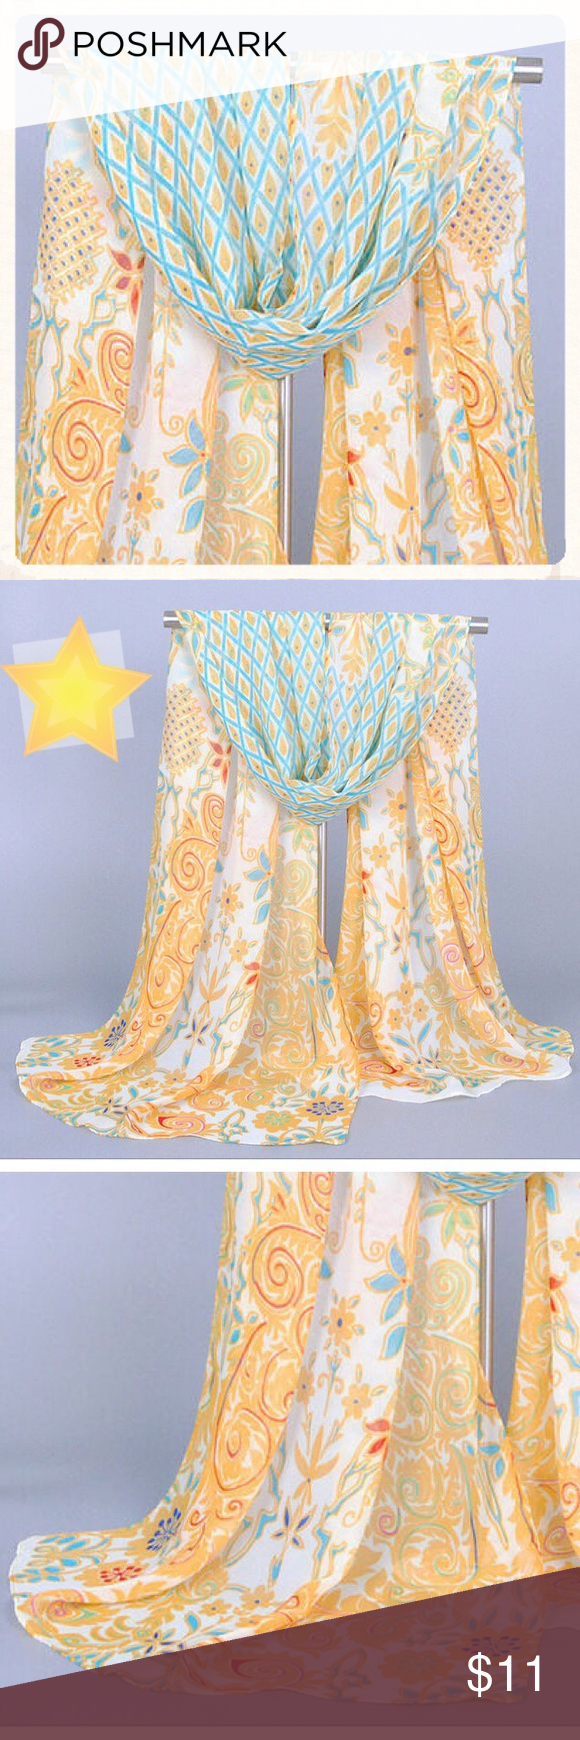 SalePretty chiffon summer scarf New! Pretty chiffon summer scarf. Has a stylized peacock pattern with floral and geometric shapes. Is about 5 feet long and 1.5 feet wide. Soft chiffon summer weight fabric. Very pretty!  New in packaging. Very well made. Color is accurate, but probably 1 shade darker. Fashion Scarf Accessories Scarves & Wraps